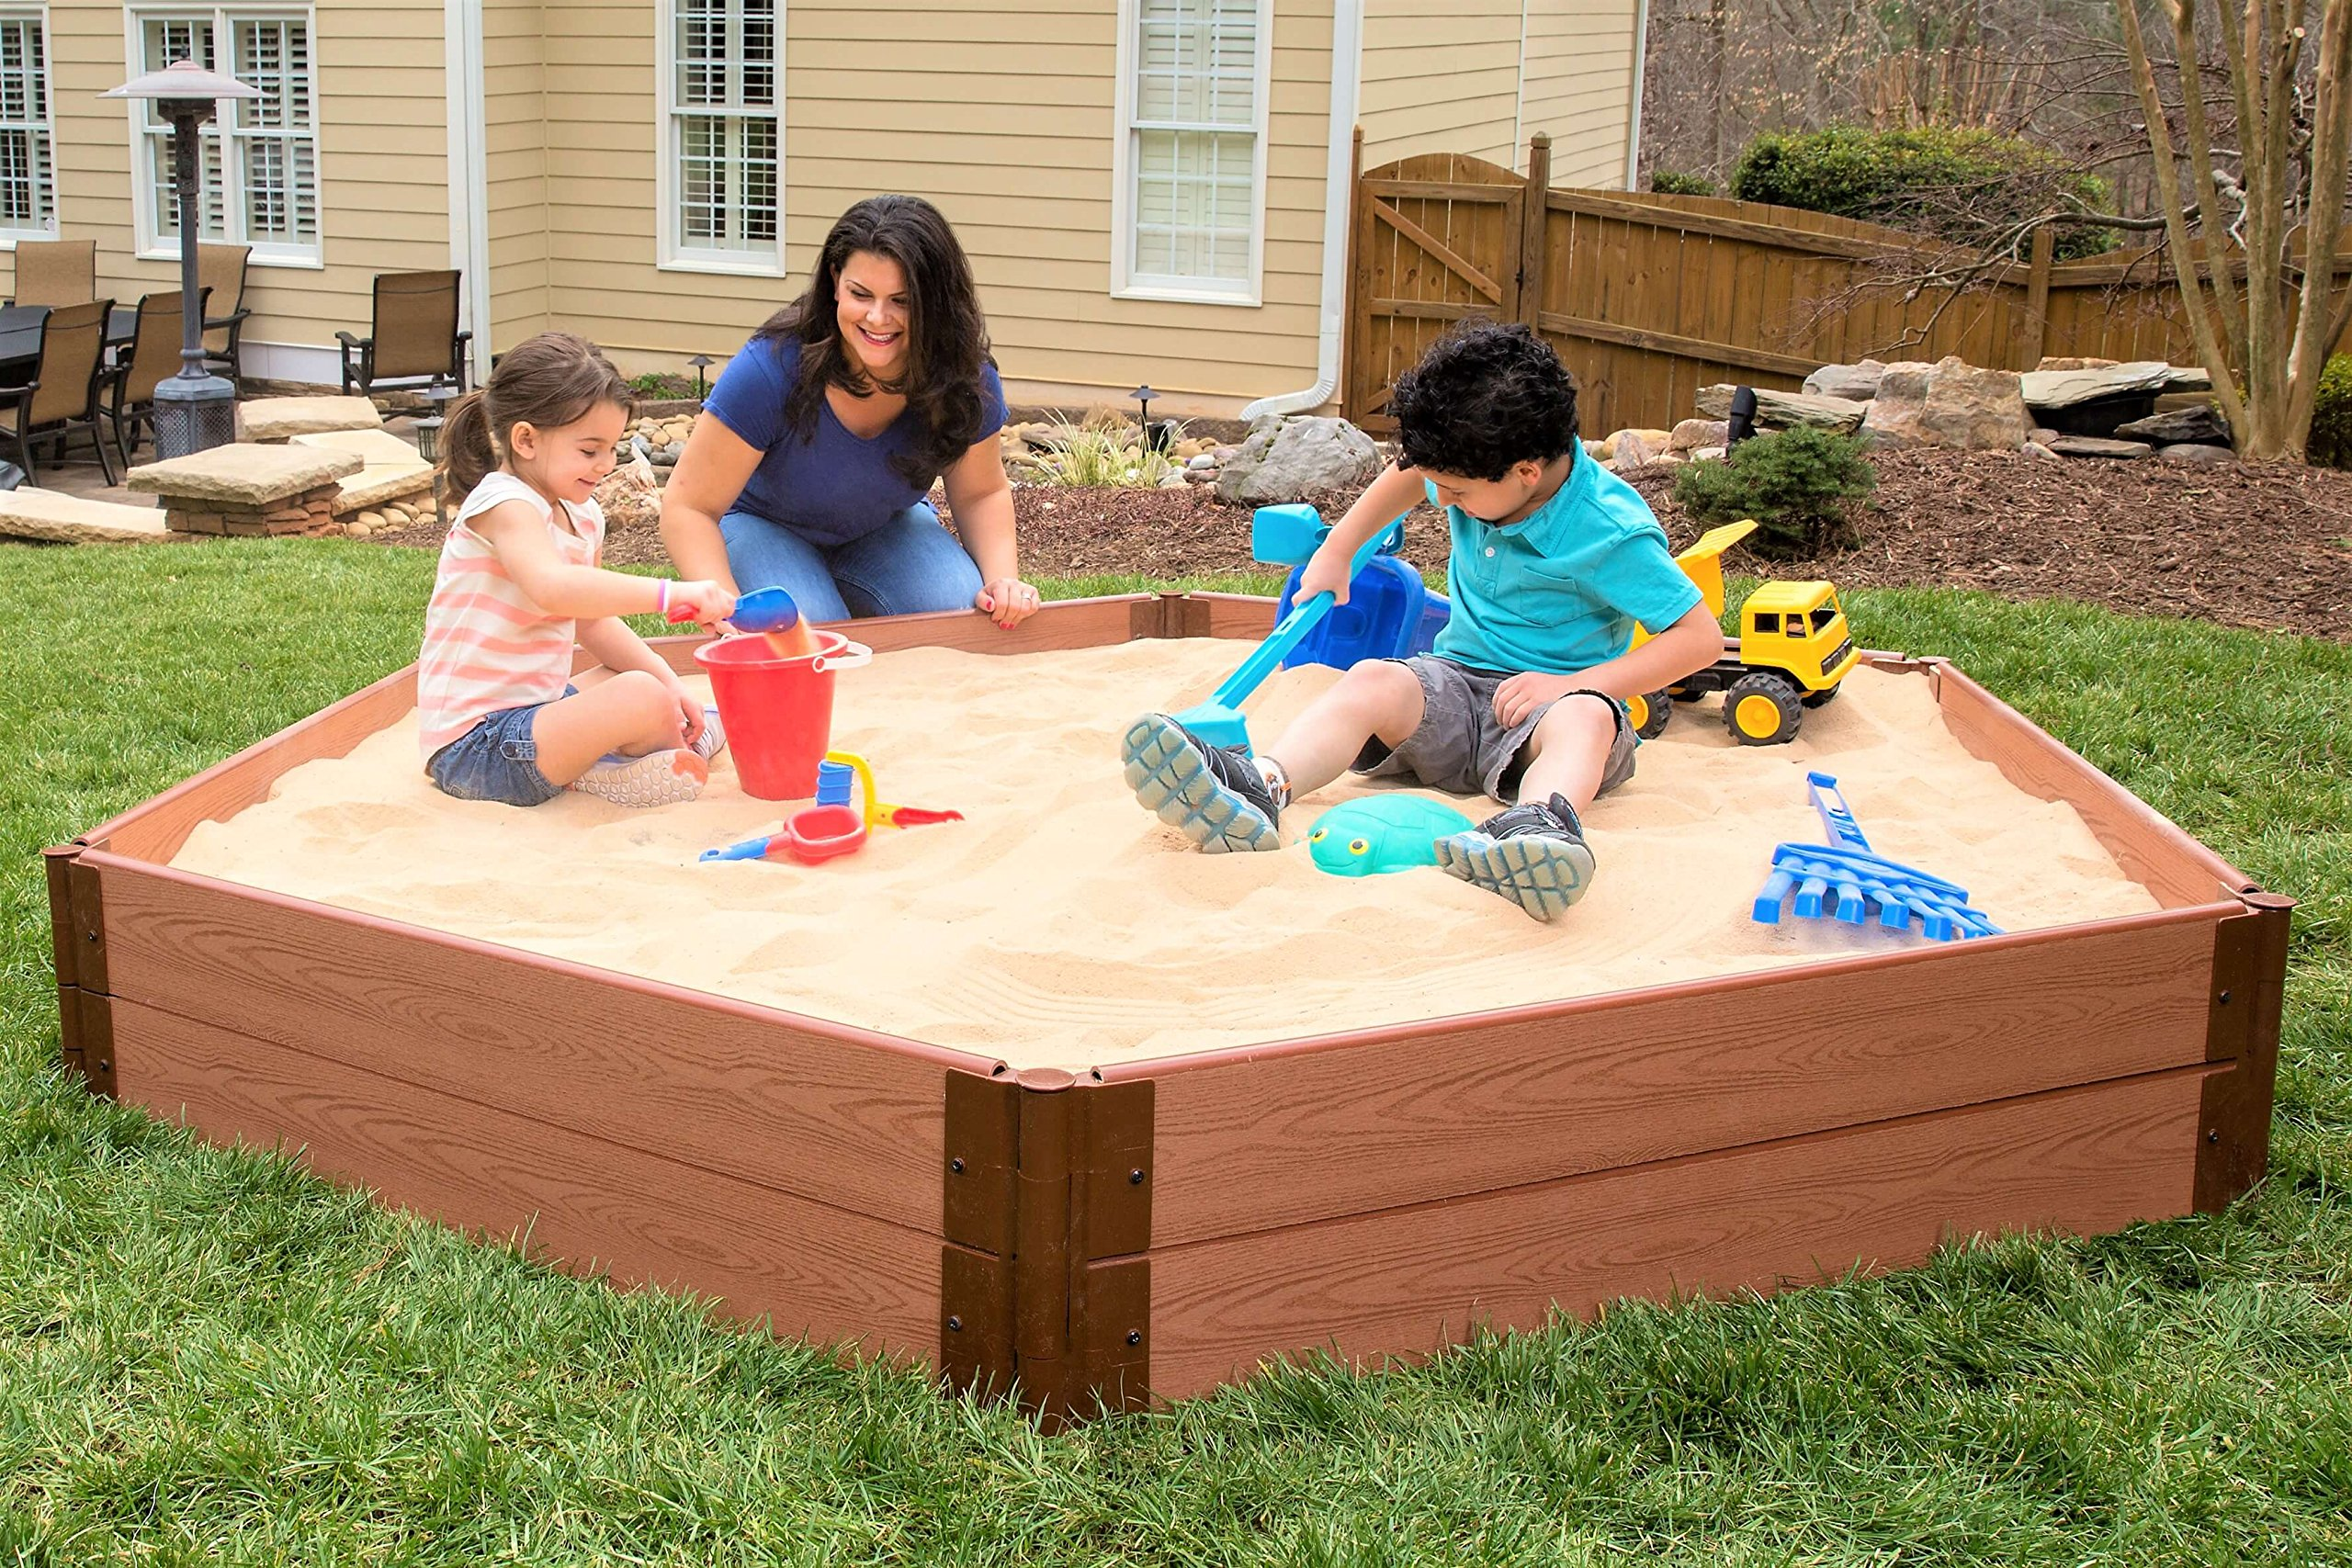 Frame It All 300001228 Sandbox Kit with Collapsible Cover by Frame It All (Image #2)